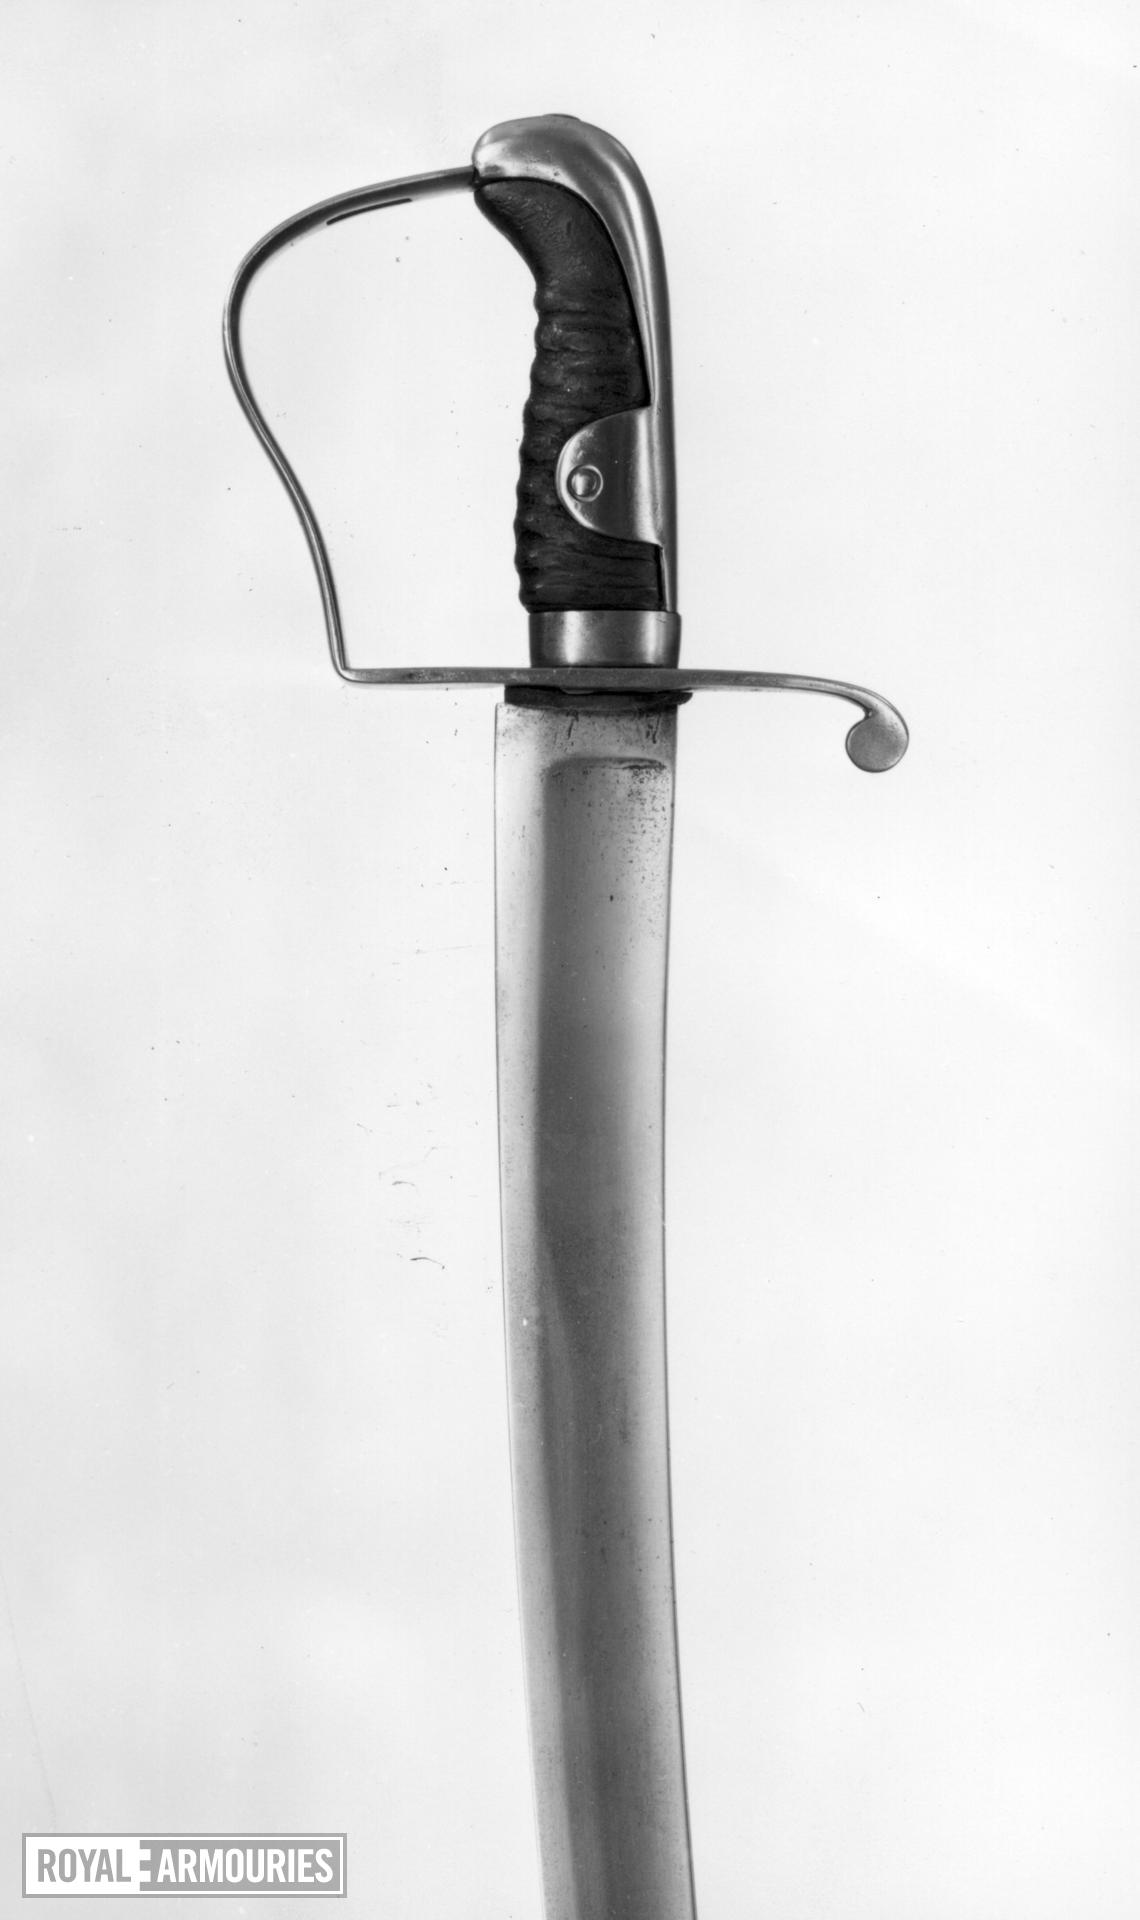 Sword and scabbard Light Cavalry Trooper sword and scabbard, Pattern 1796.